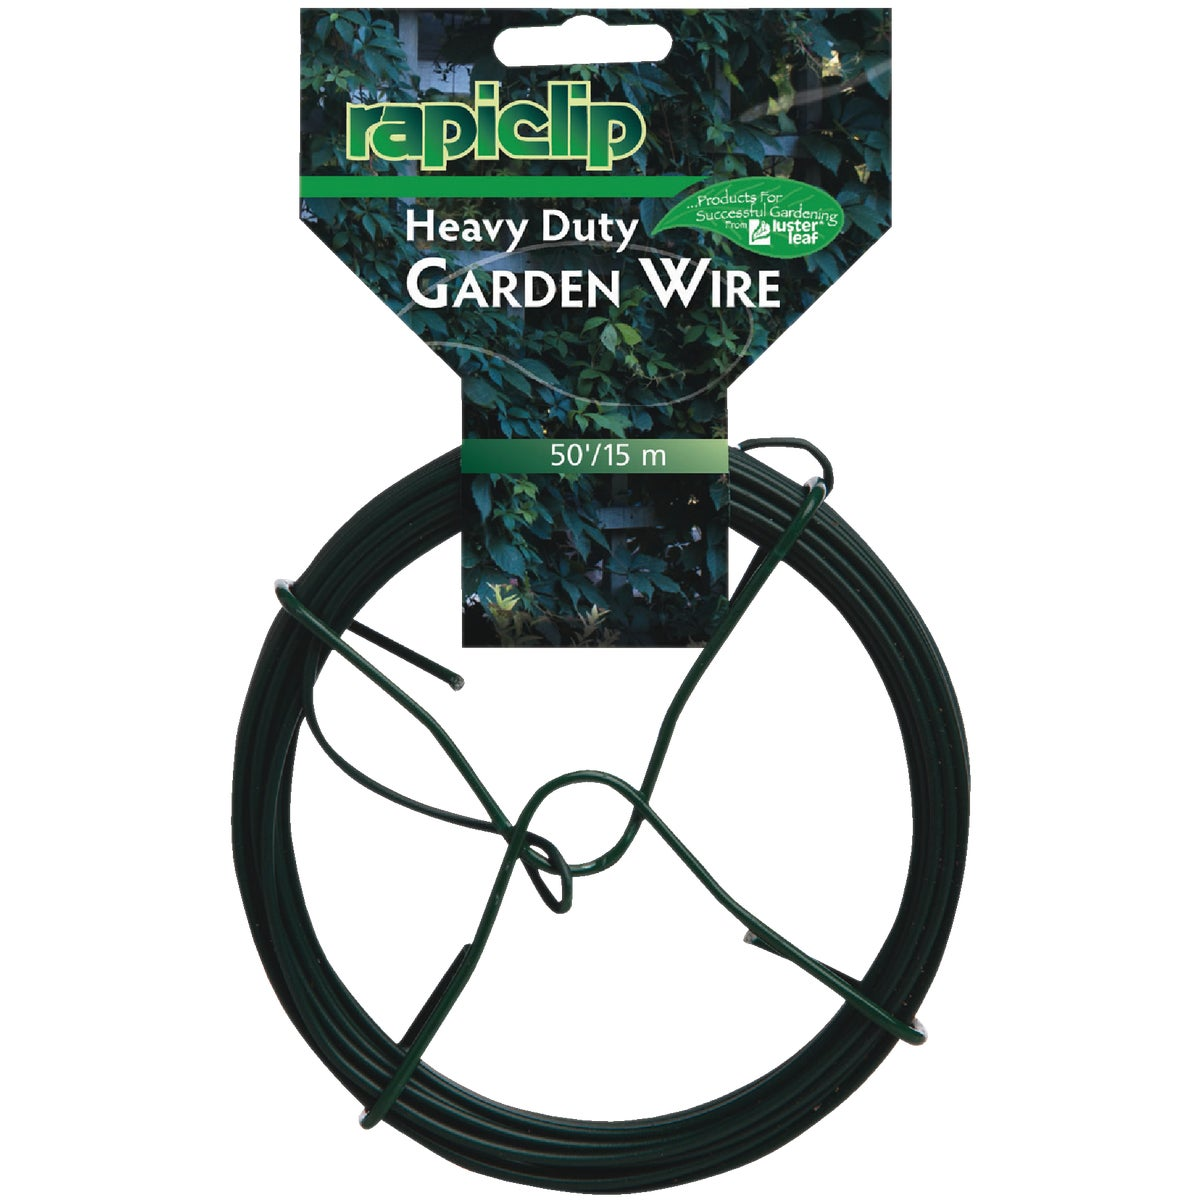 HEAVY DUTY GARDEN WIRE - 834 by Luster Leaf Prod Inc